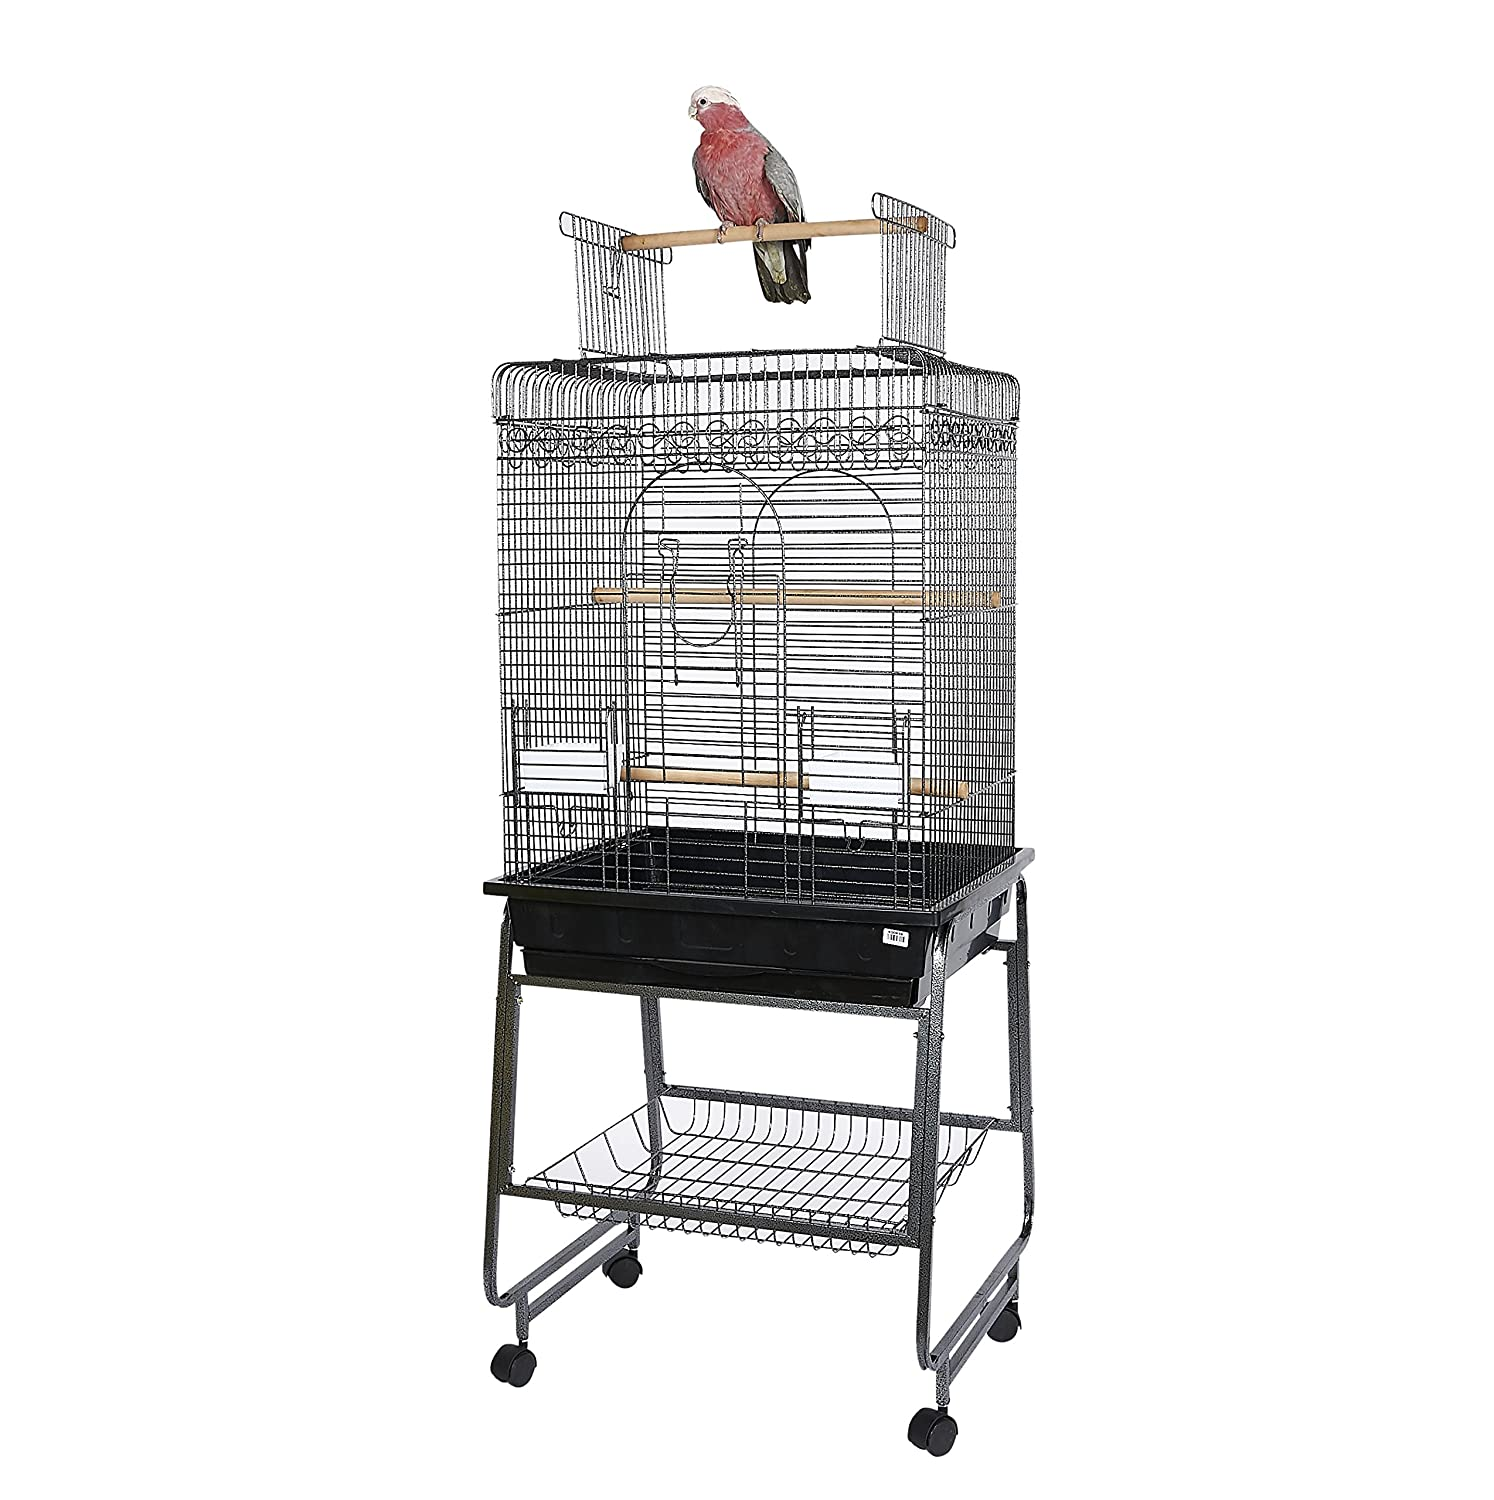 Kookaburra Cedar Parred Cage and Stand for Small and Medium sized Parreds